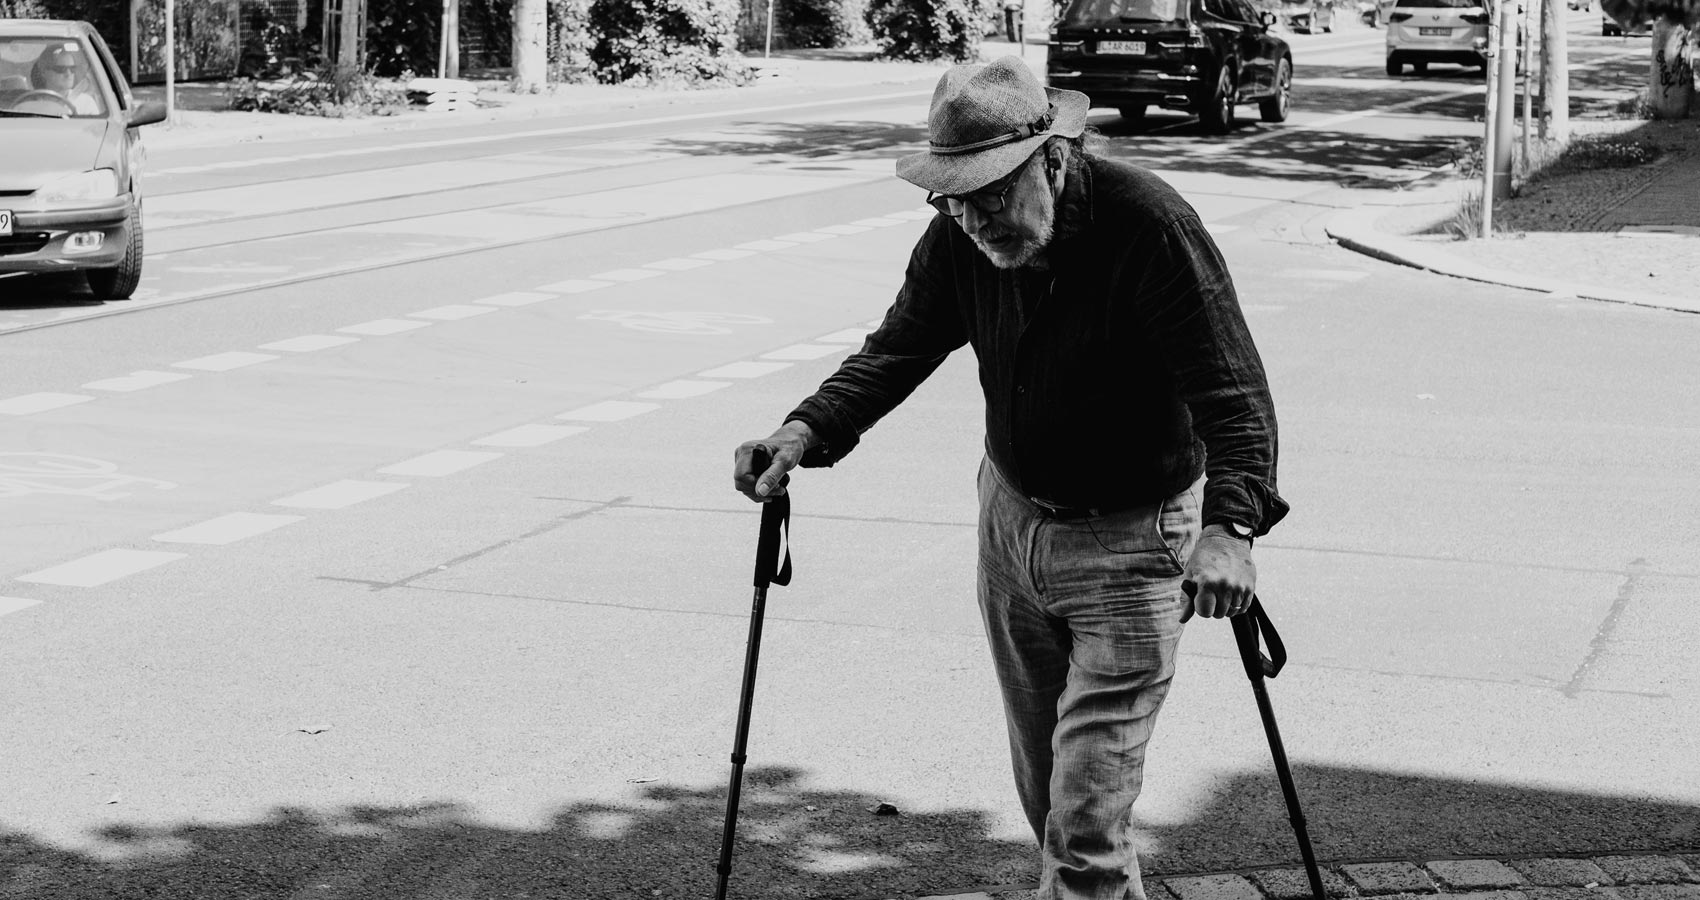 The Old Man, micropoetry by Timothy Resau at Spillwords.com